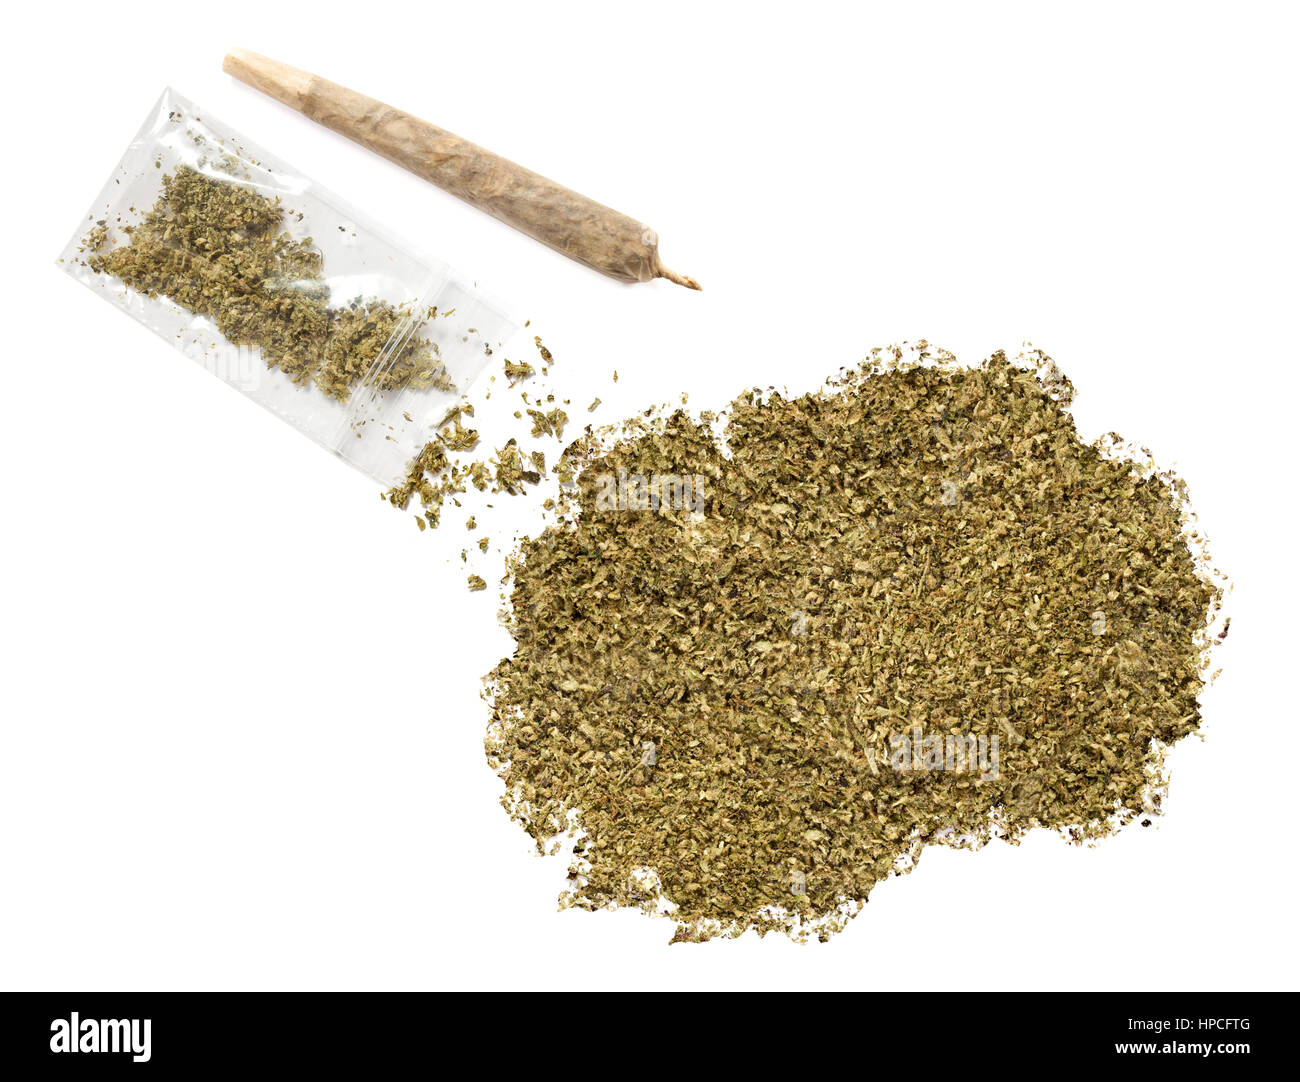 Grinded weed shaped as Macedonia and a joint.(series) - Stock Image